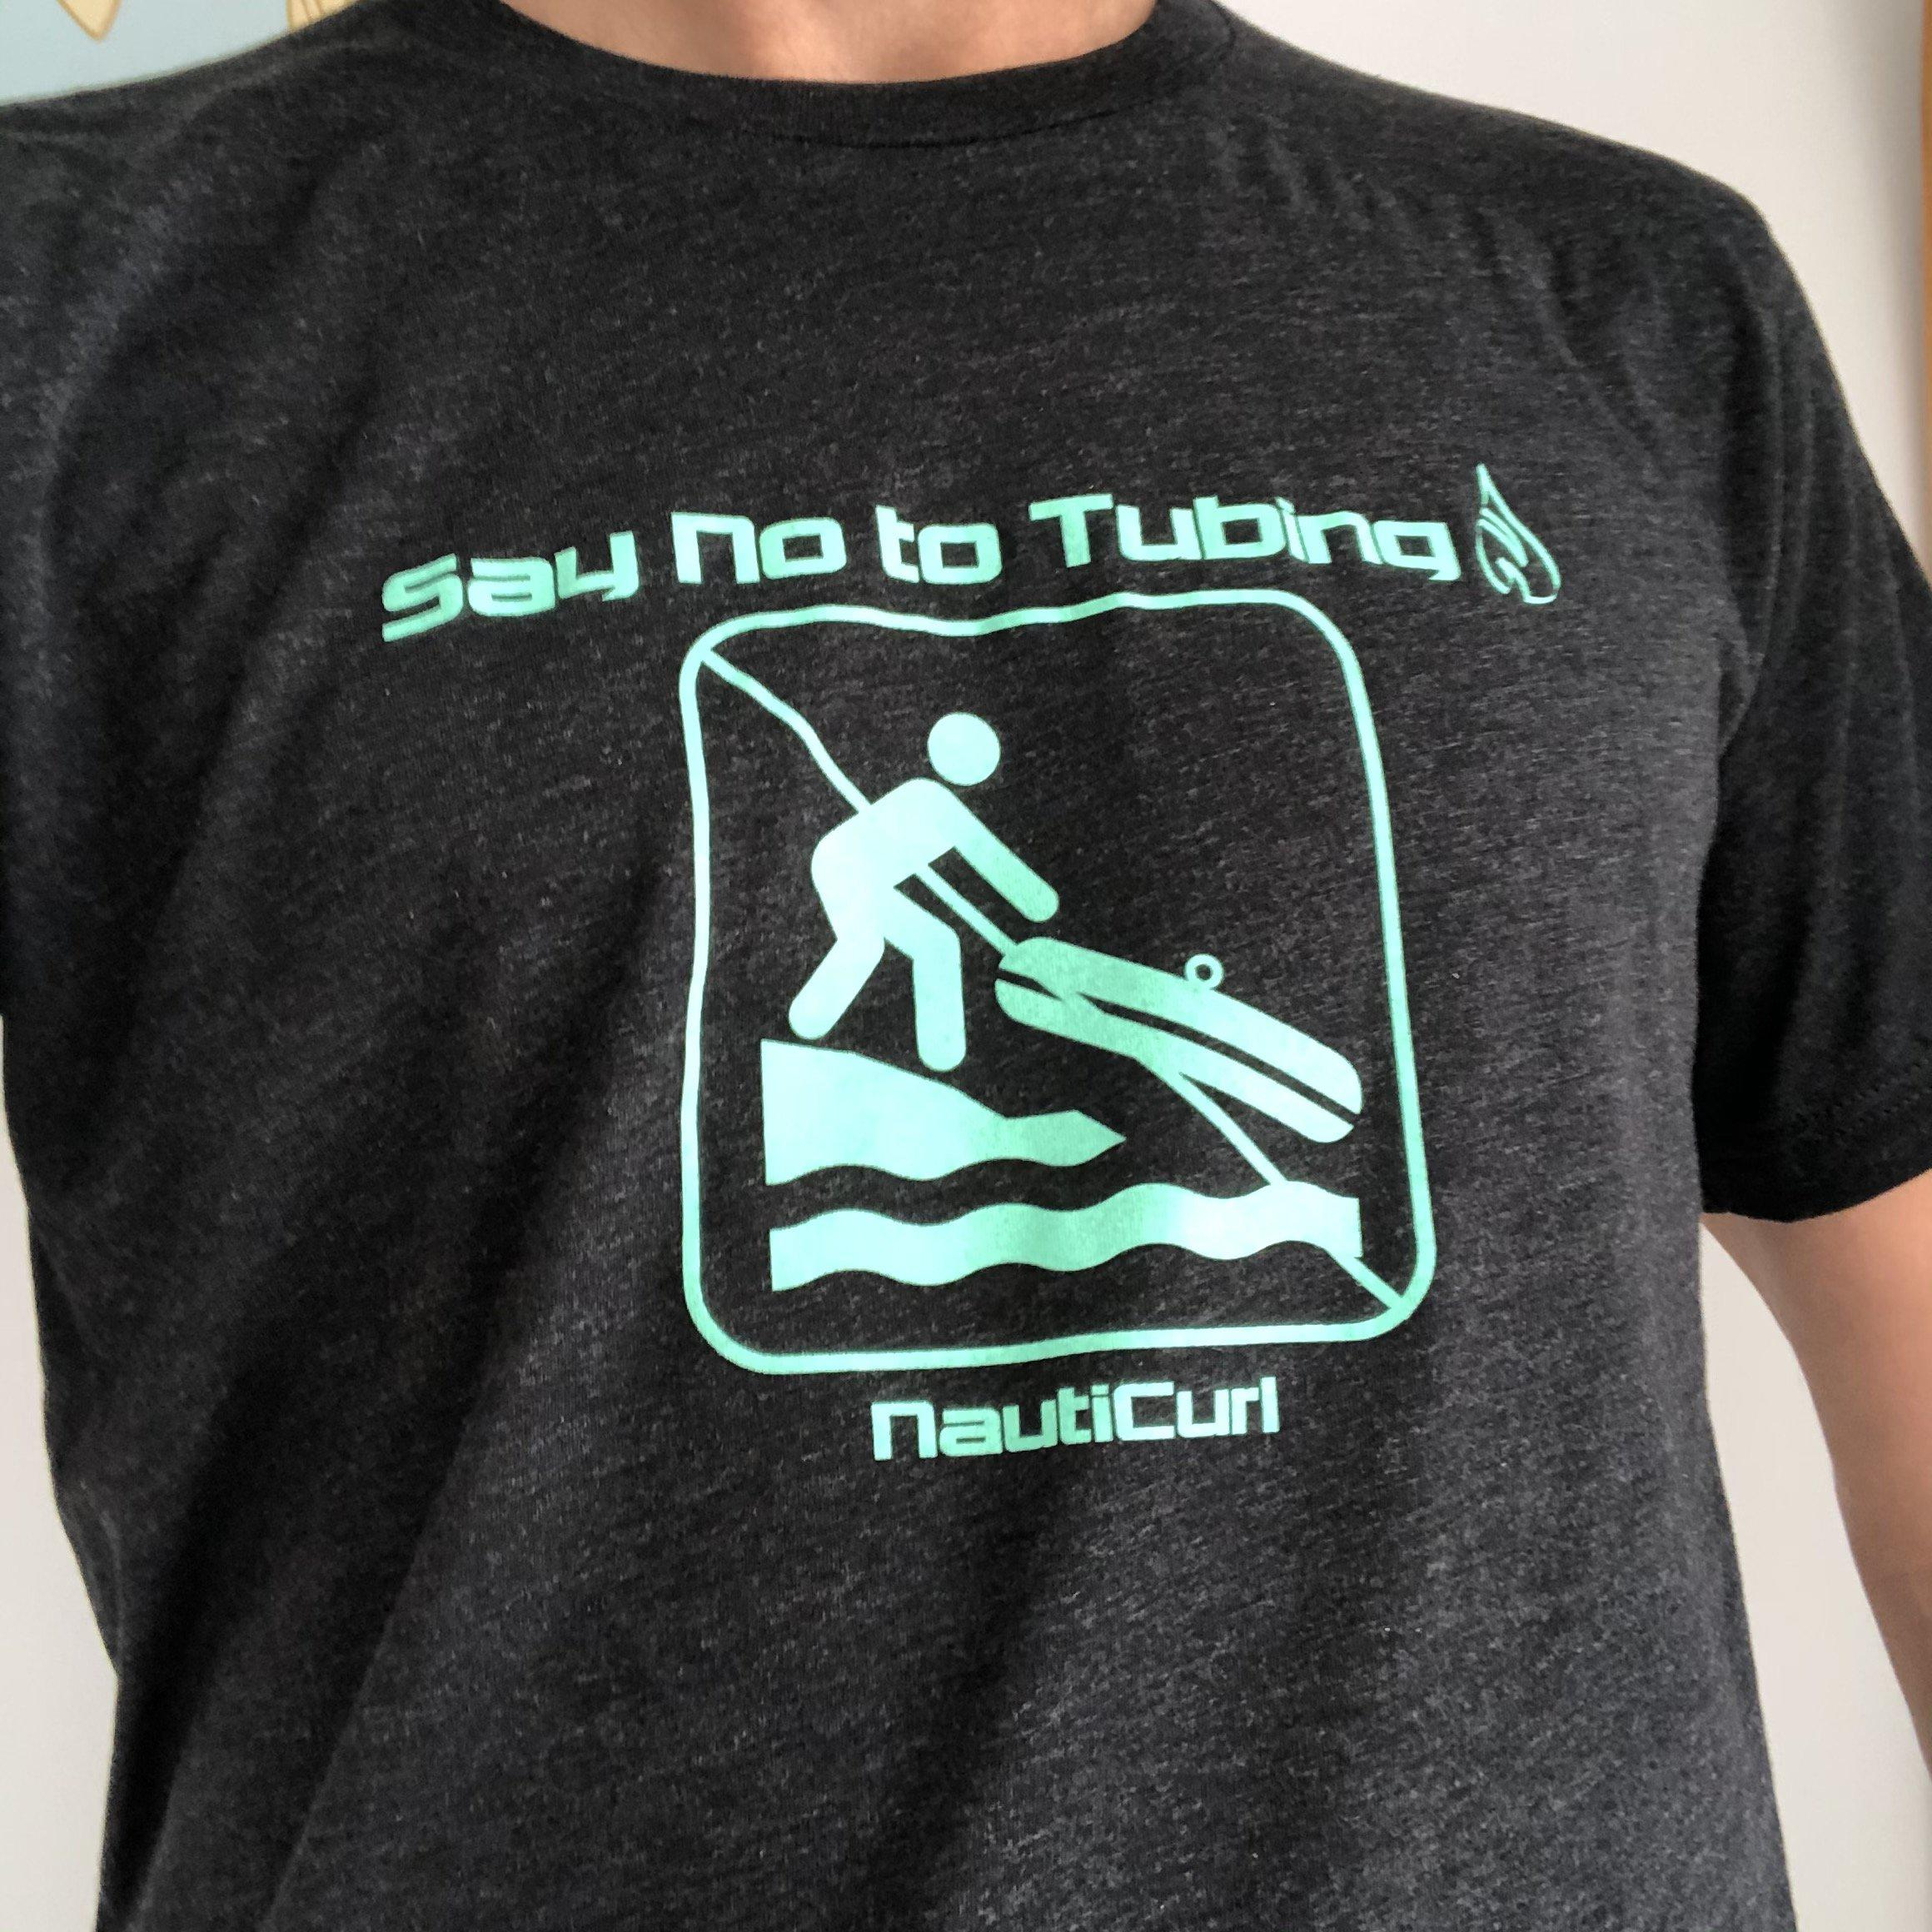 Funny boating shirt - Say no to tubing NautiCurl wakesurfing tshirt